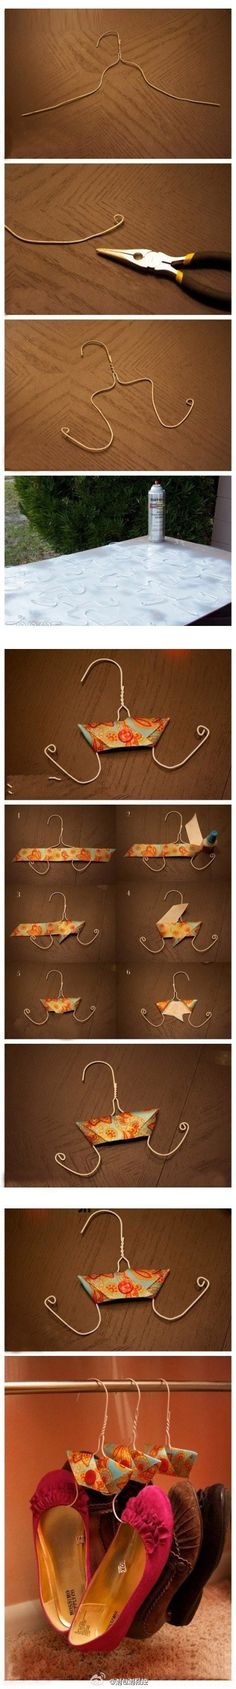 This is a good idea for the lower sections of our closet that aren't high enough for shirts... hang the shoes!